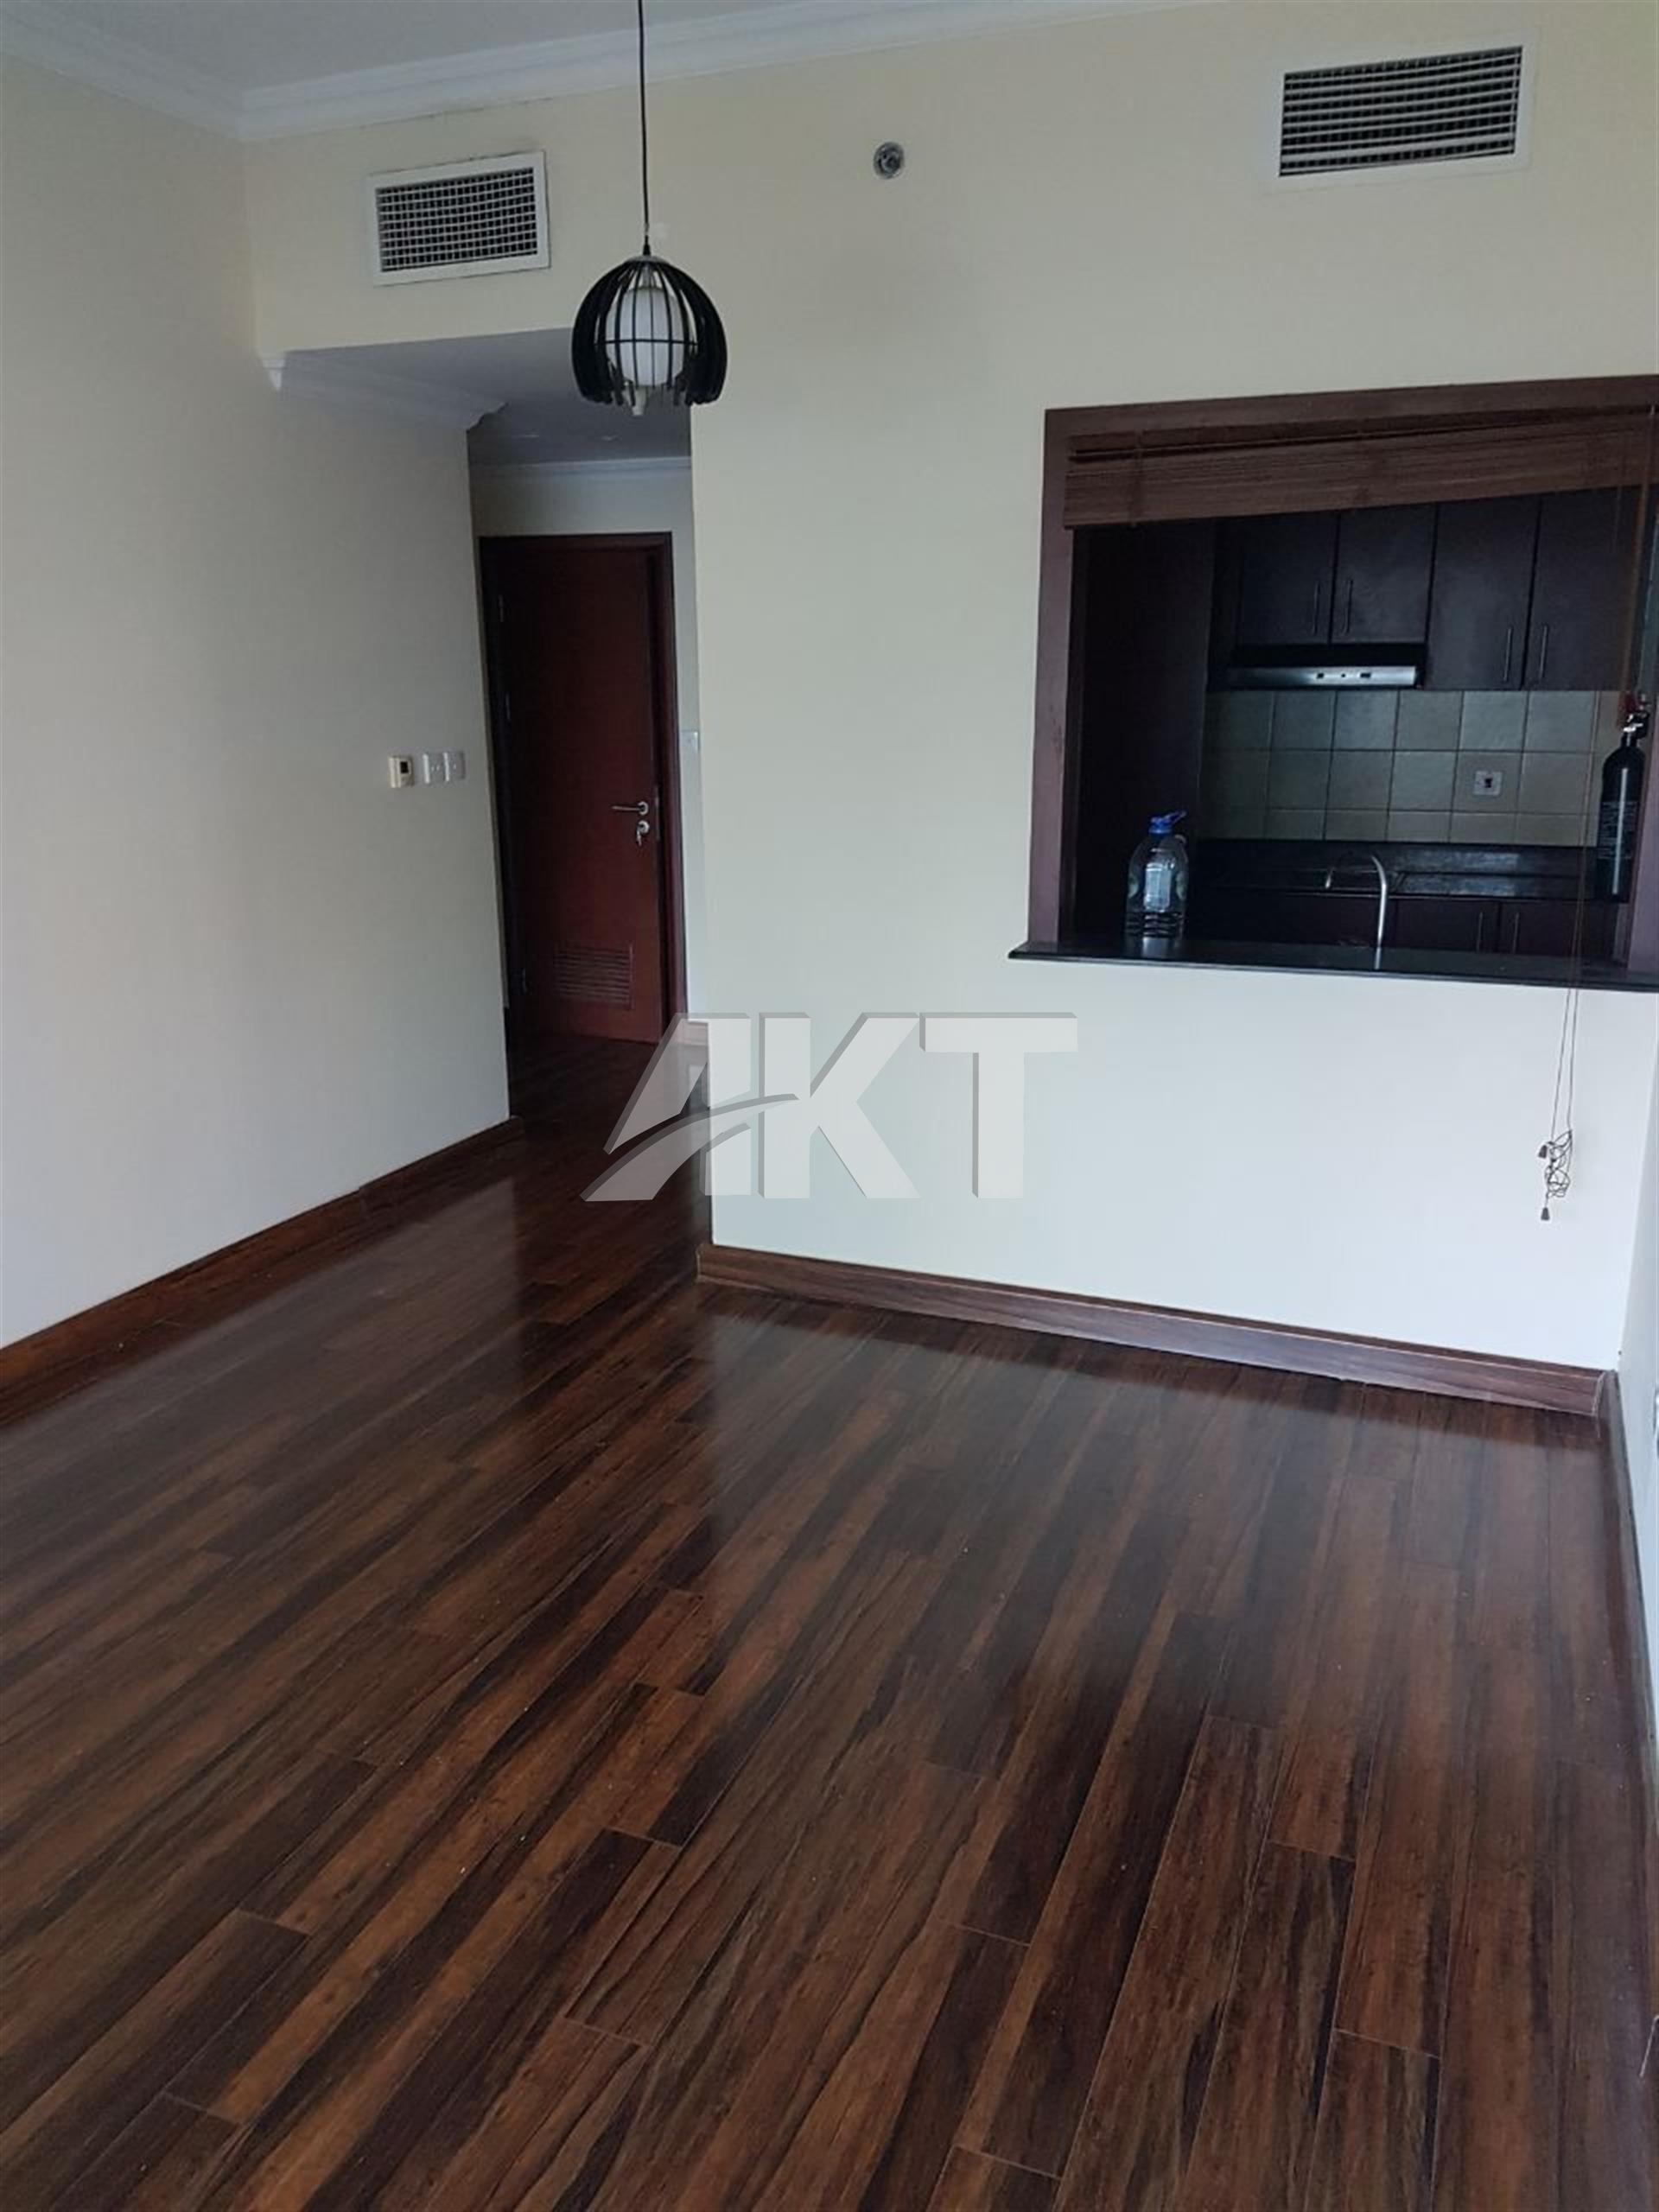 1 bedroom 1 bath apartments for rent apm289809 one bedroom one bathroom apartment to rent